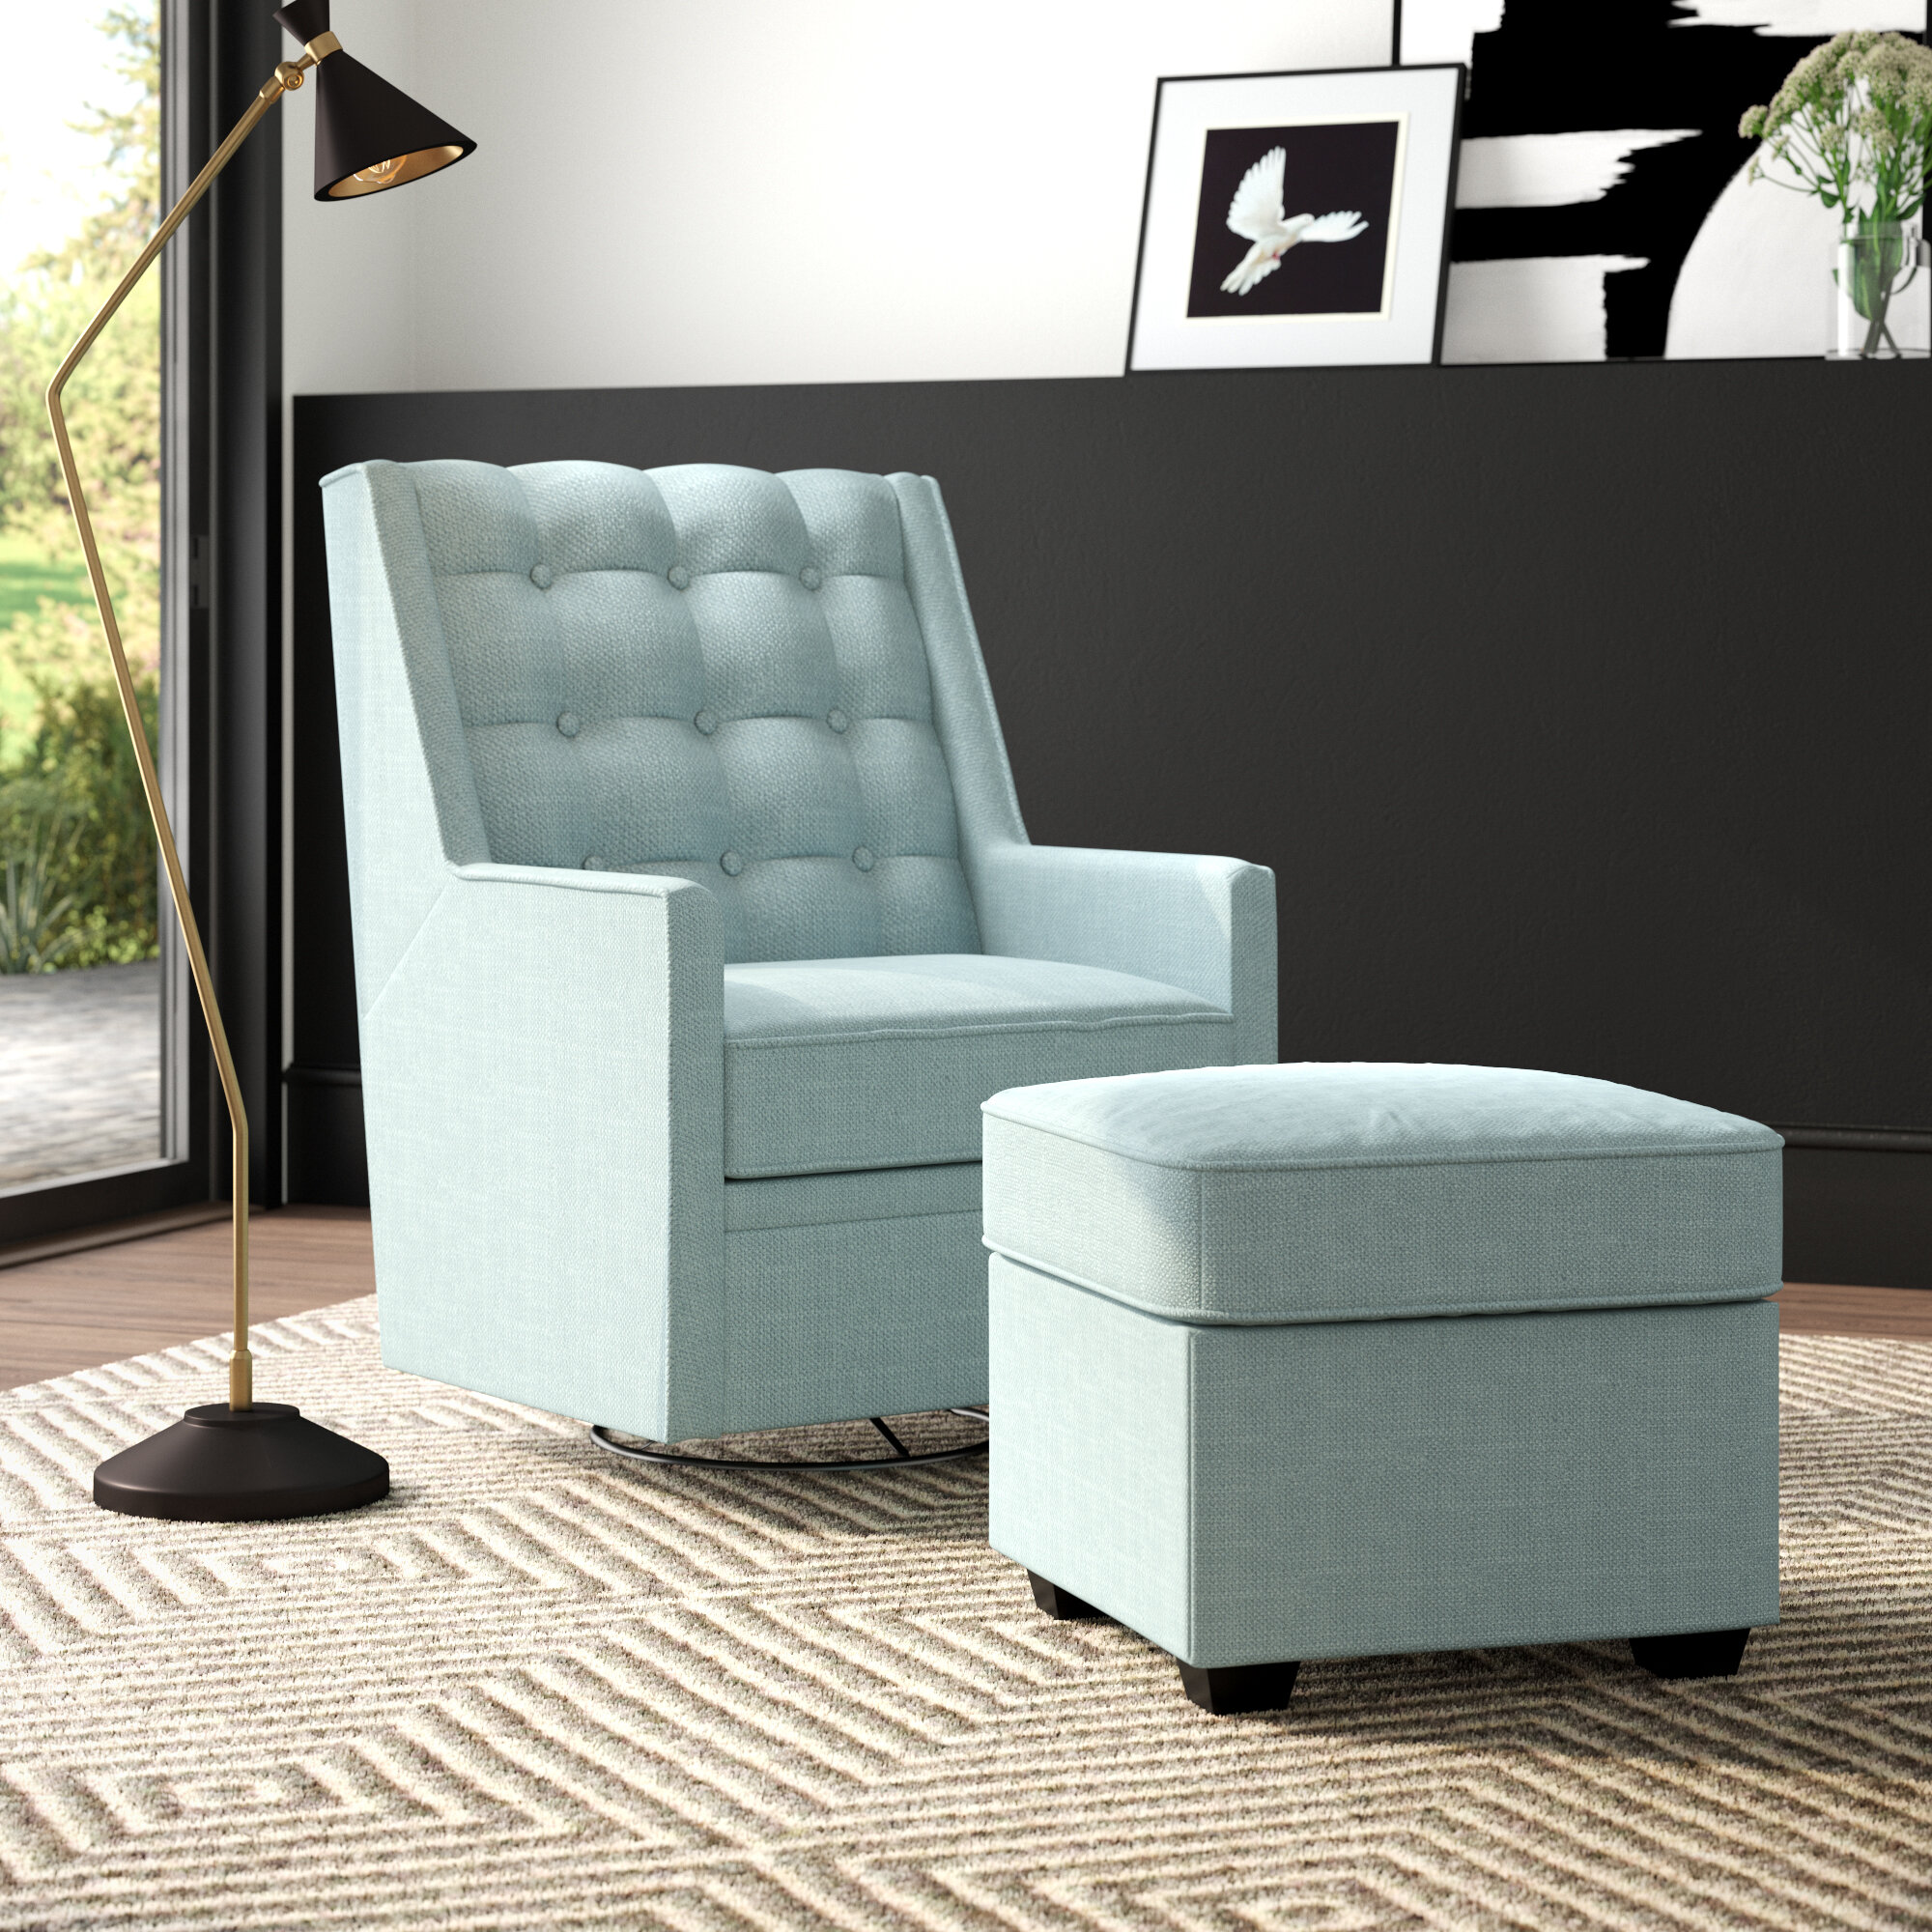 Phenomenal West Hill Swivel Glider And Ottoman Pabps2019 Chair Design Images Pabps2019Com